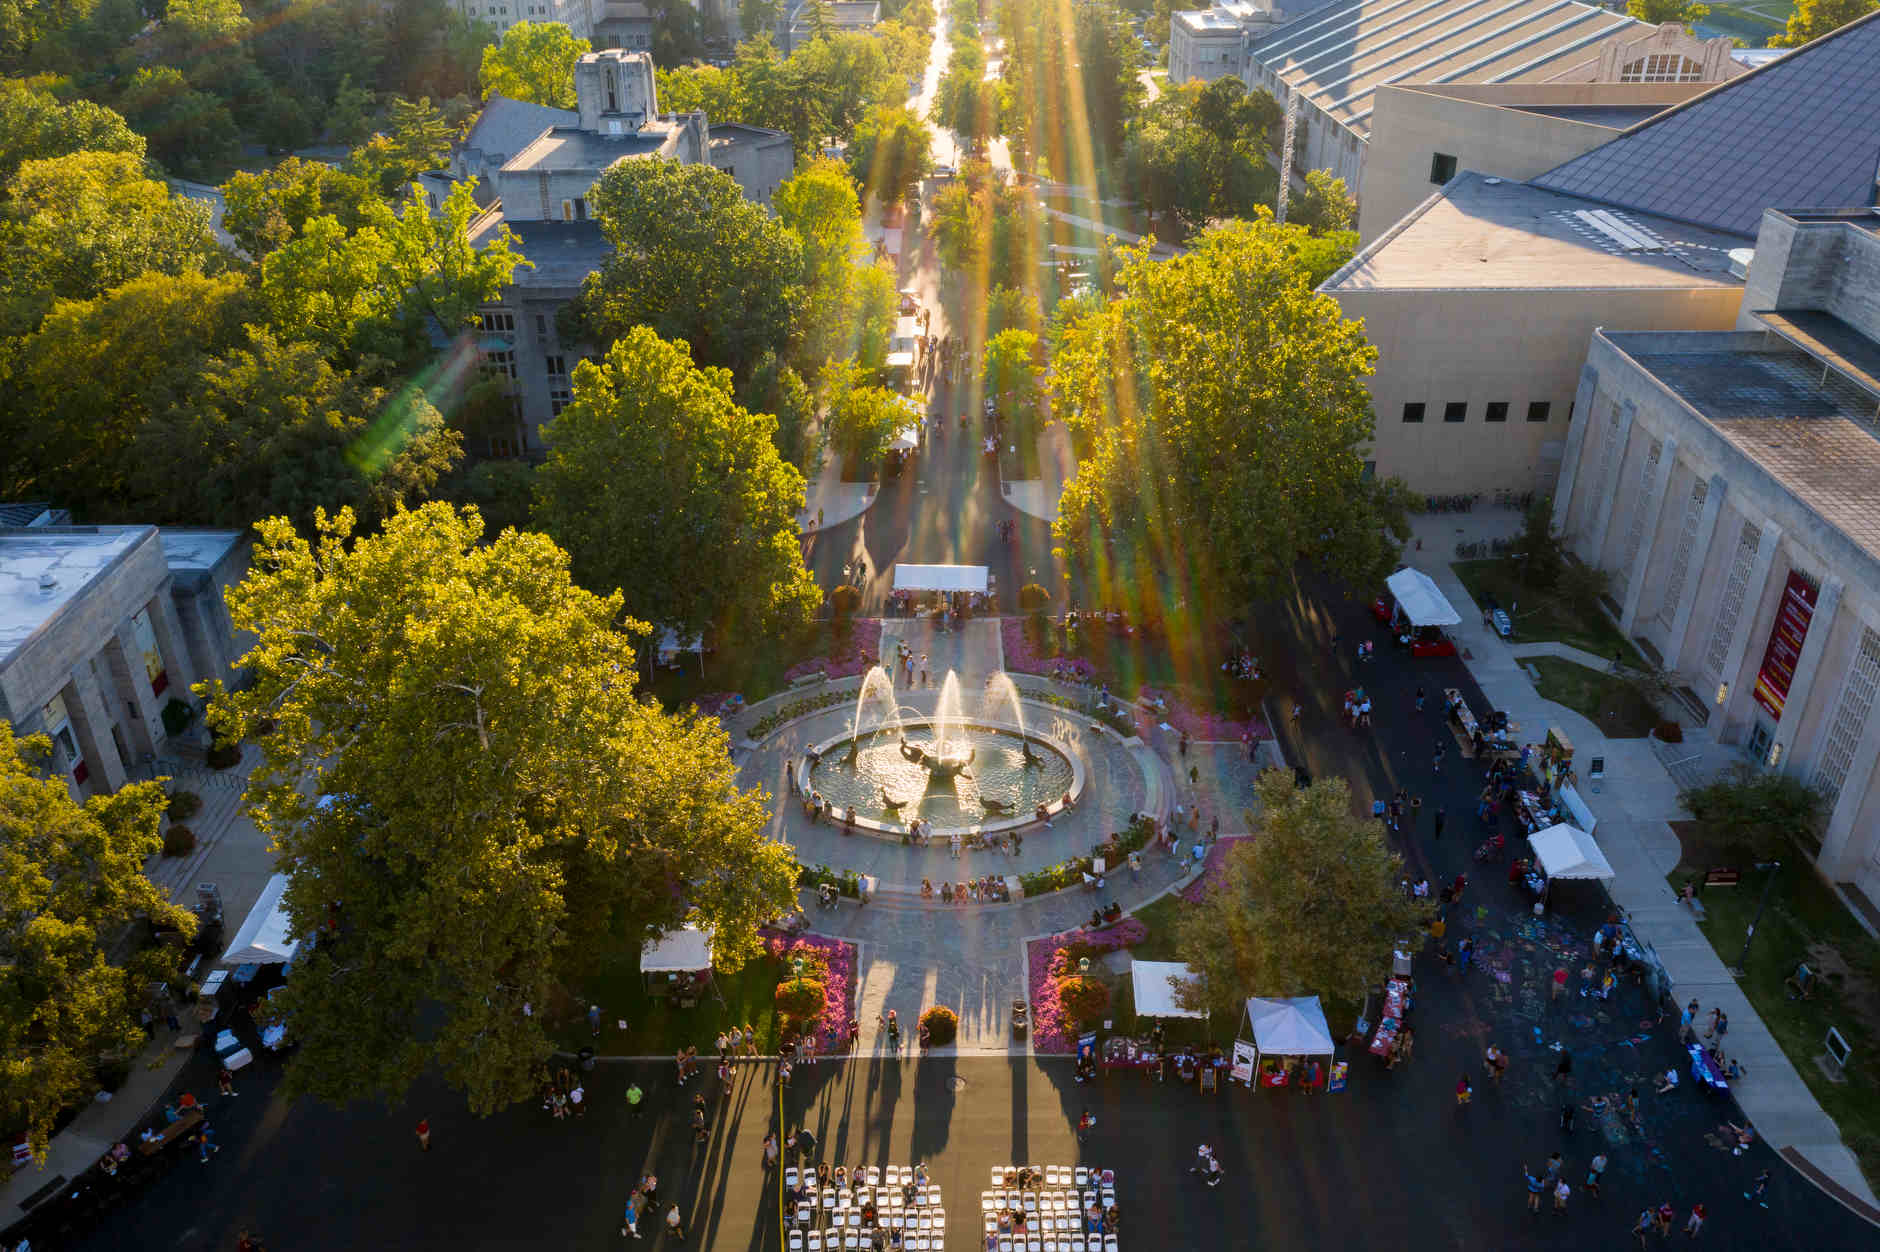 People enjoy a beautiful evening during the First Thursdays Festival on the Arts Plaza at IU Bloomington on Thursday, Sept. 5, 2019. (James Brosher/Indiana University)